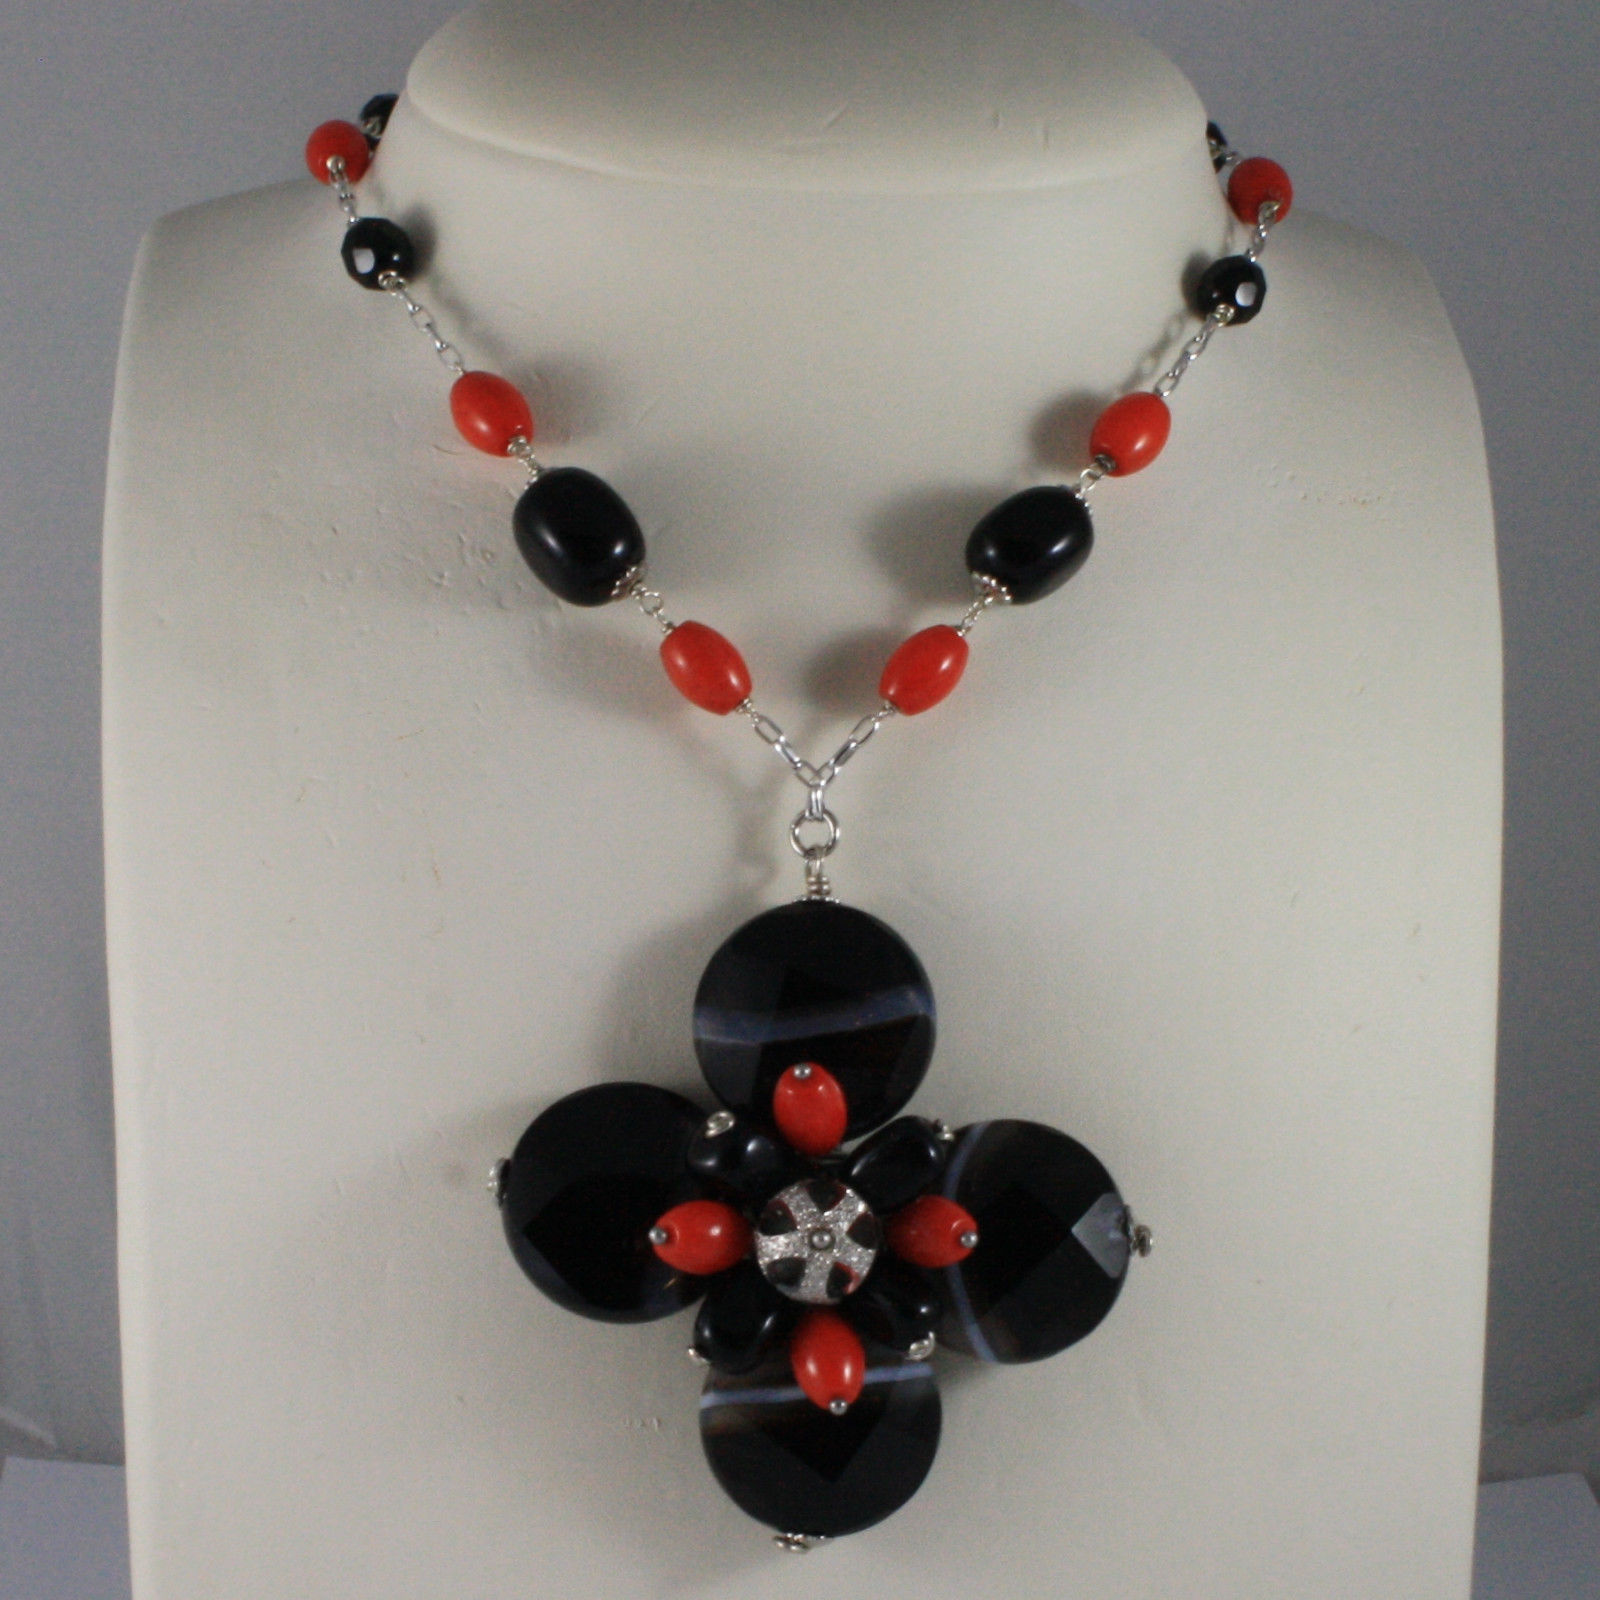 .925 SILVER RHODIUM NECKLACE WITH BLACK ONYX, BROWN AGATE AND CORAL BAMBOO